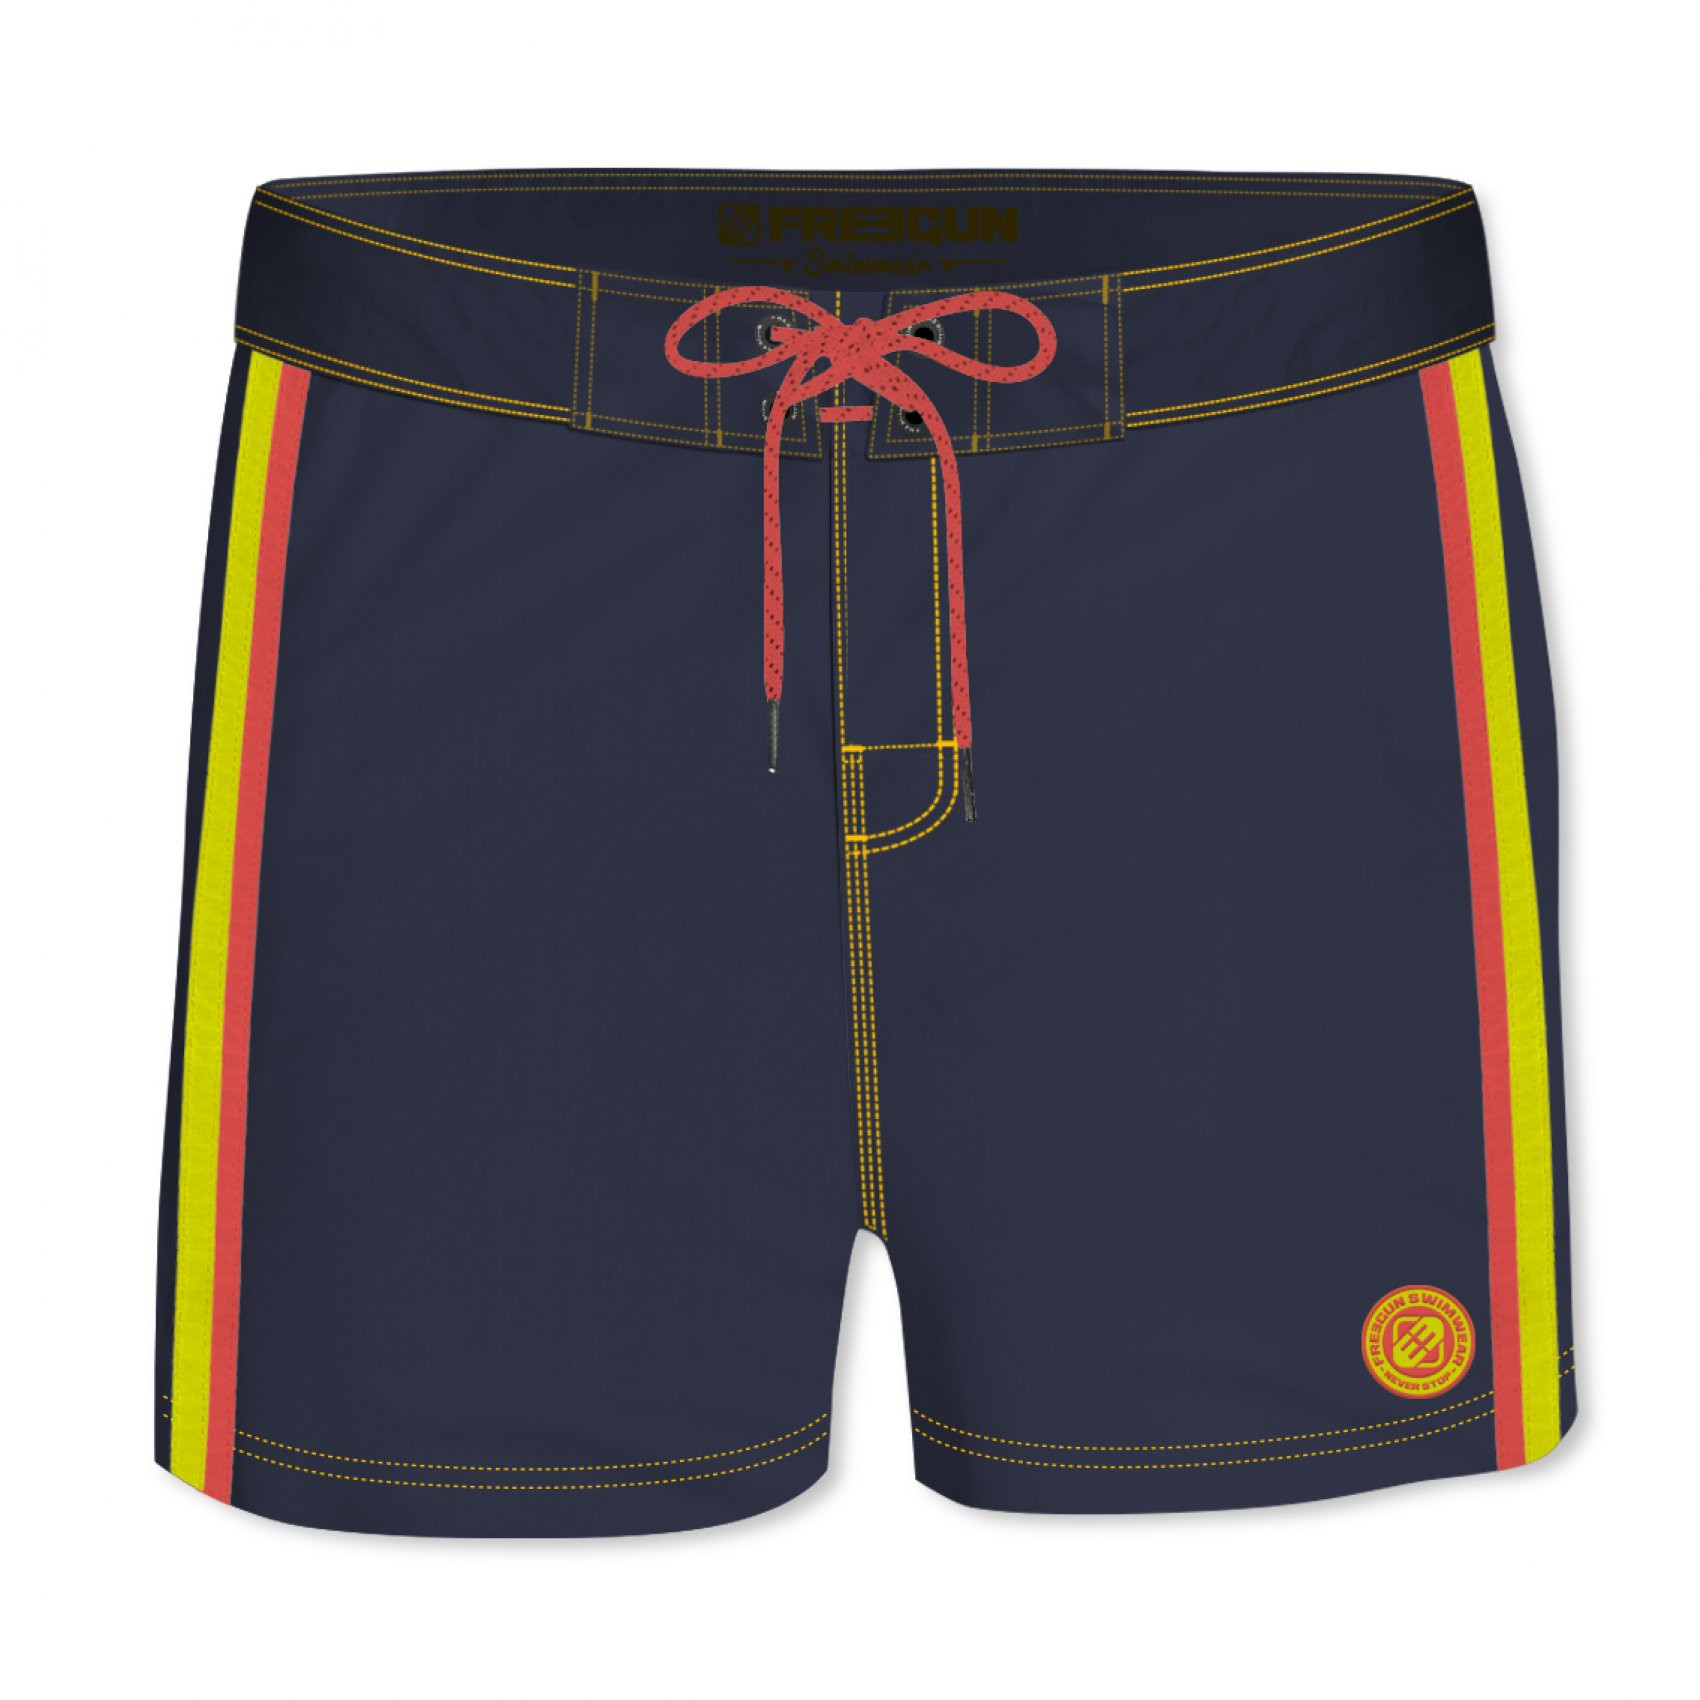 Boardshort court homme freegun band uni bleu (photo)